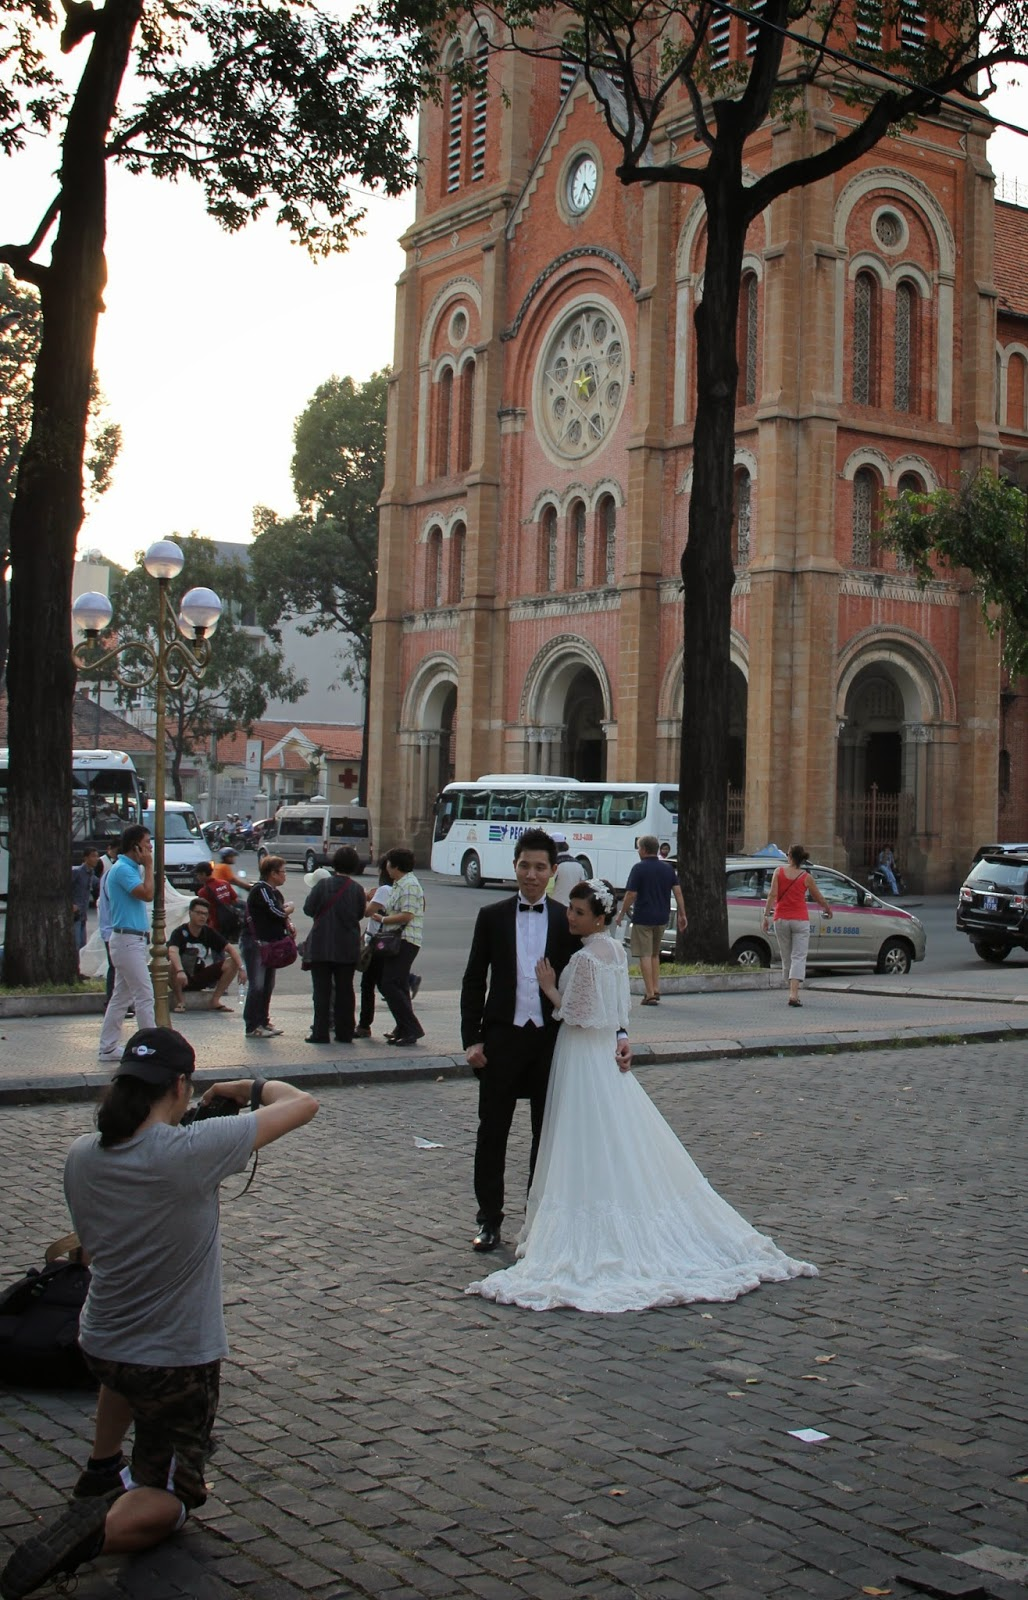 Bride and groom in front of Notre Dame cathedral.